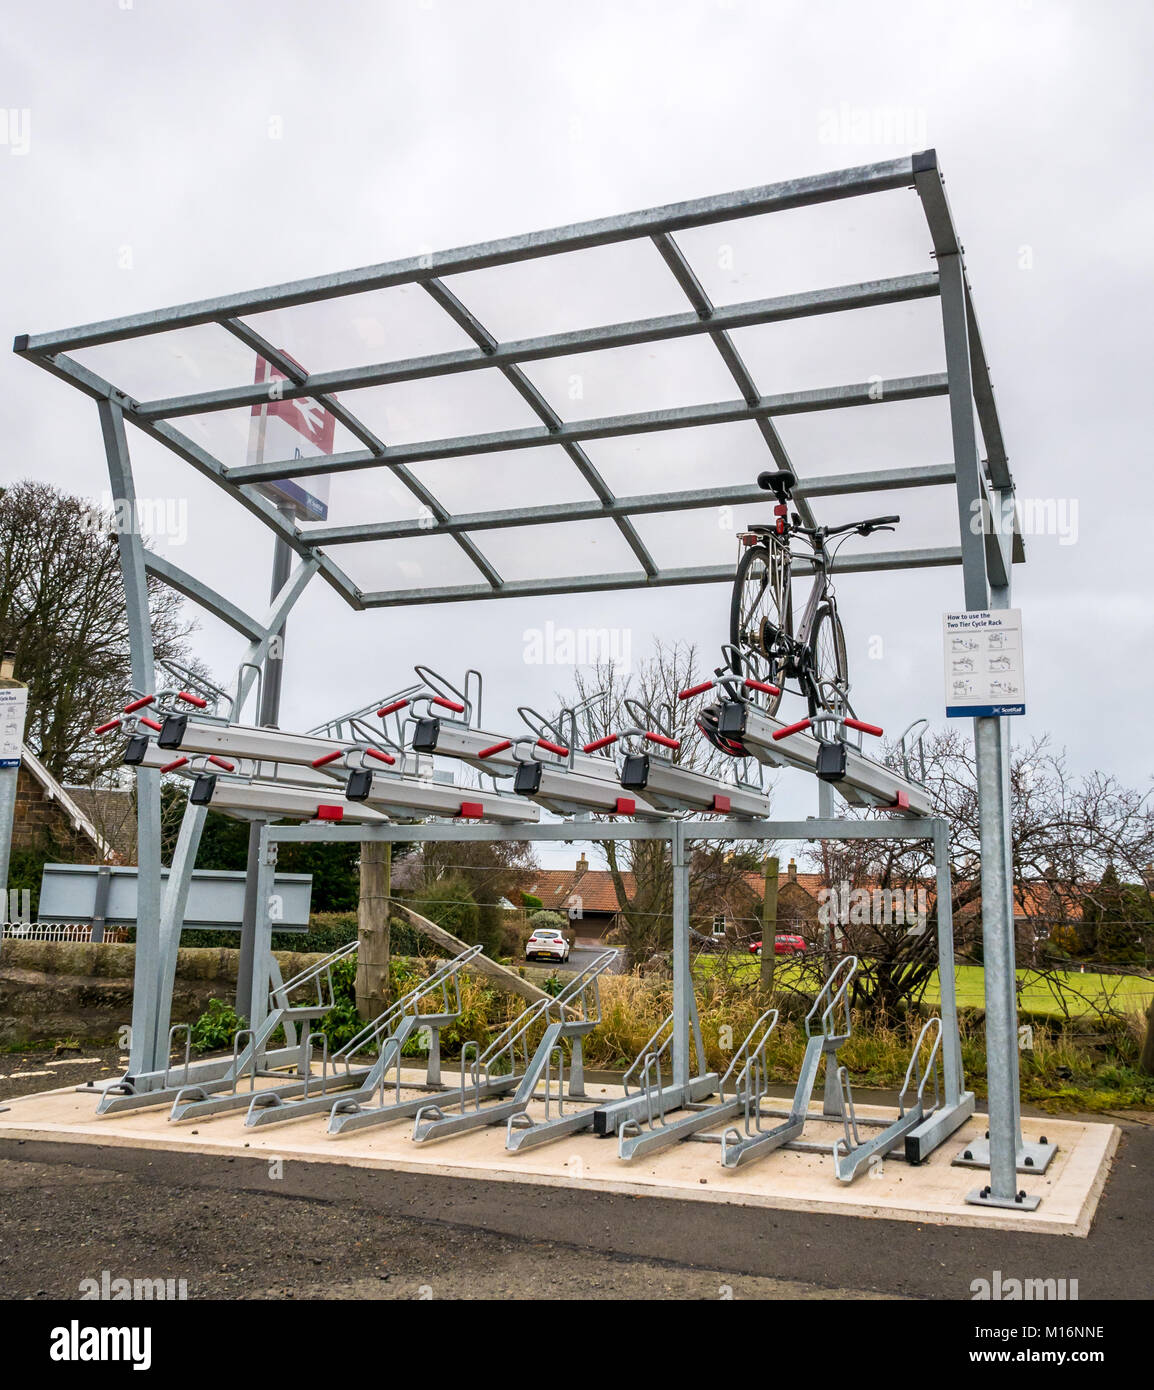 Single bicycle parked in new stacked bicycle parking stand, Drem train station, East Lothian, Scotland, UK - Stock Image